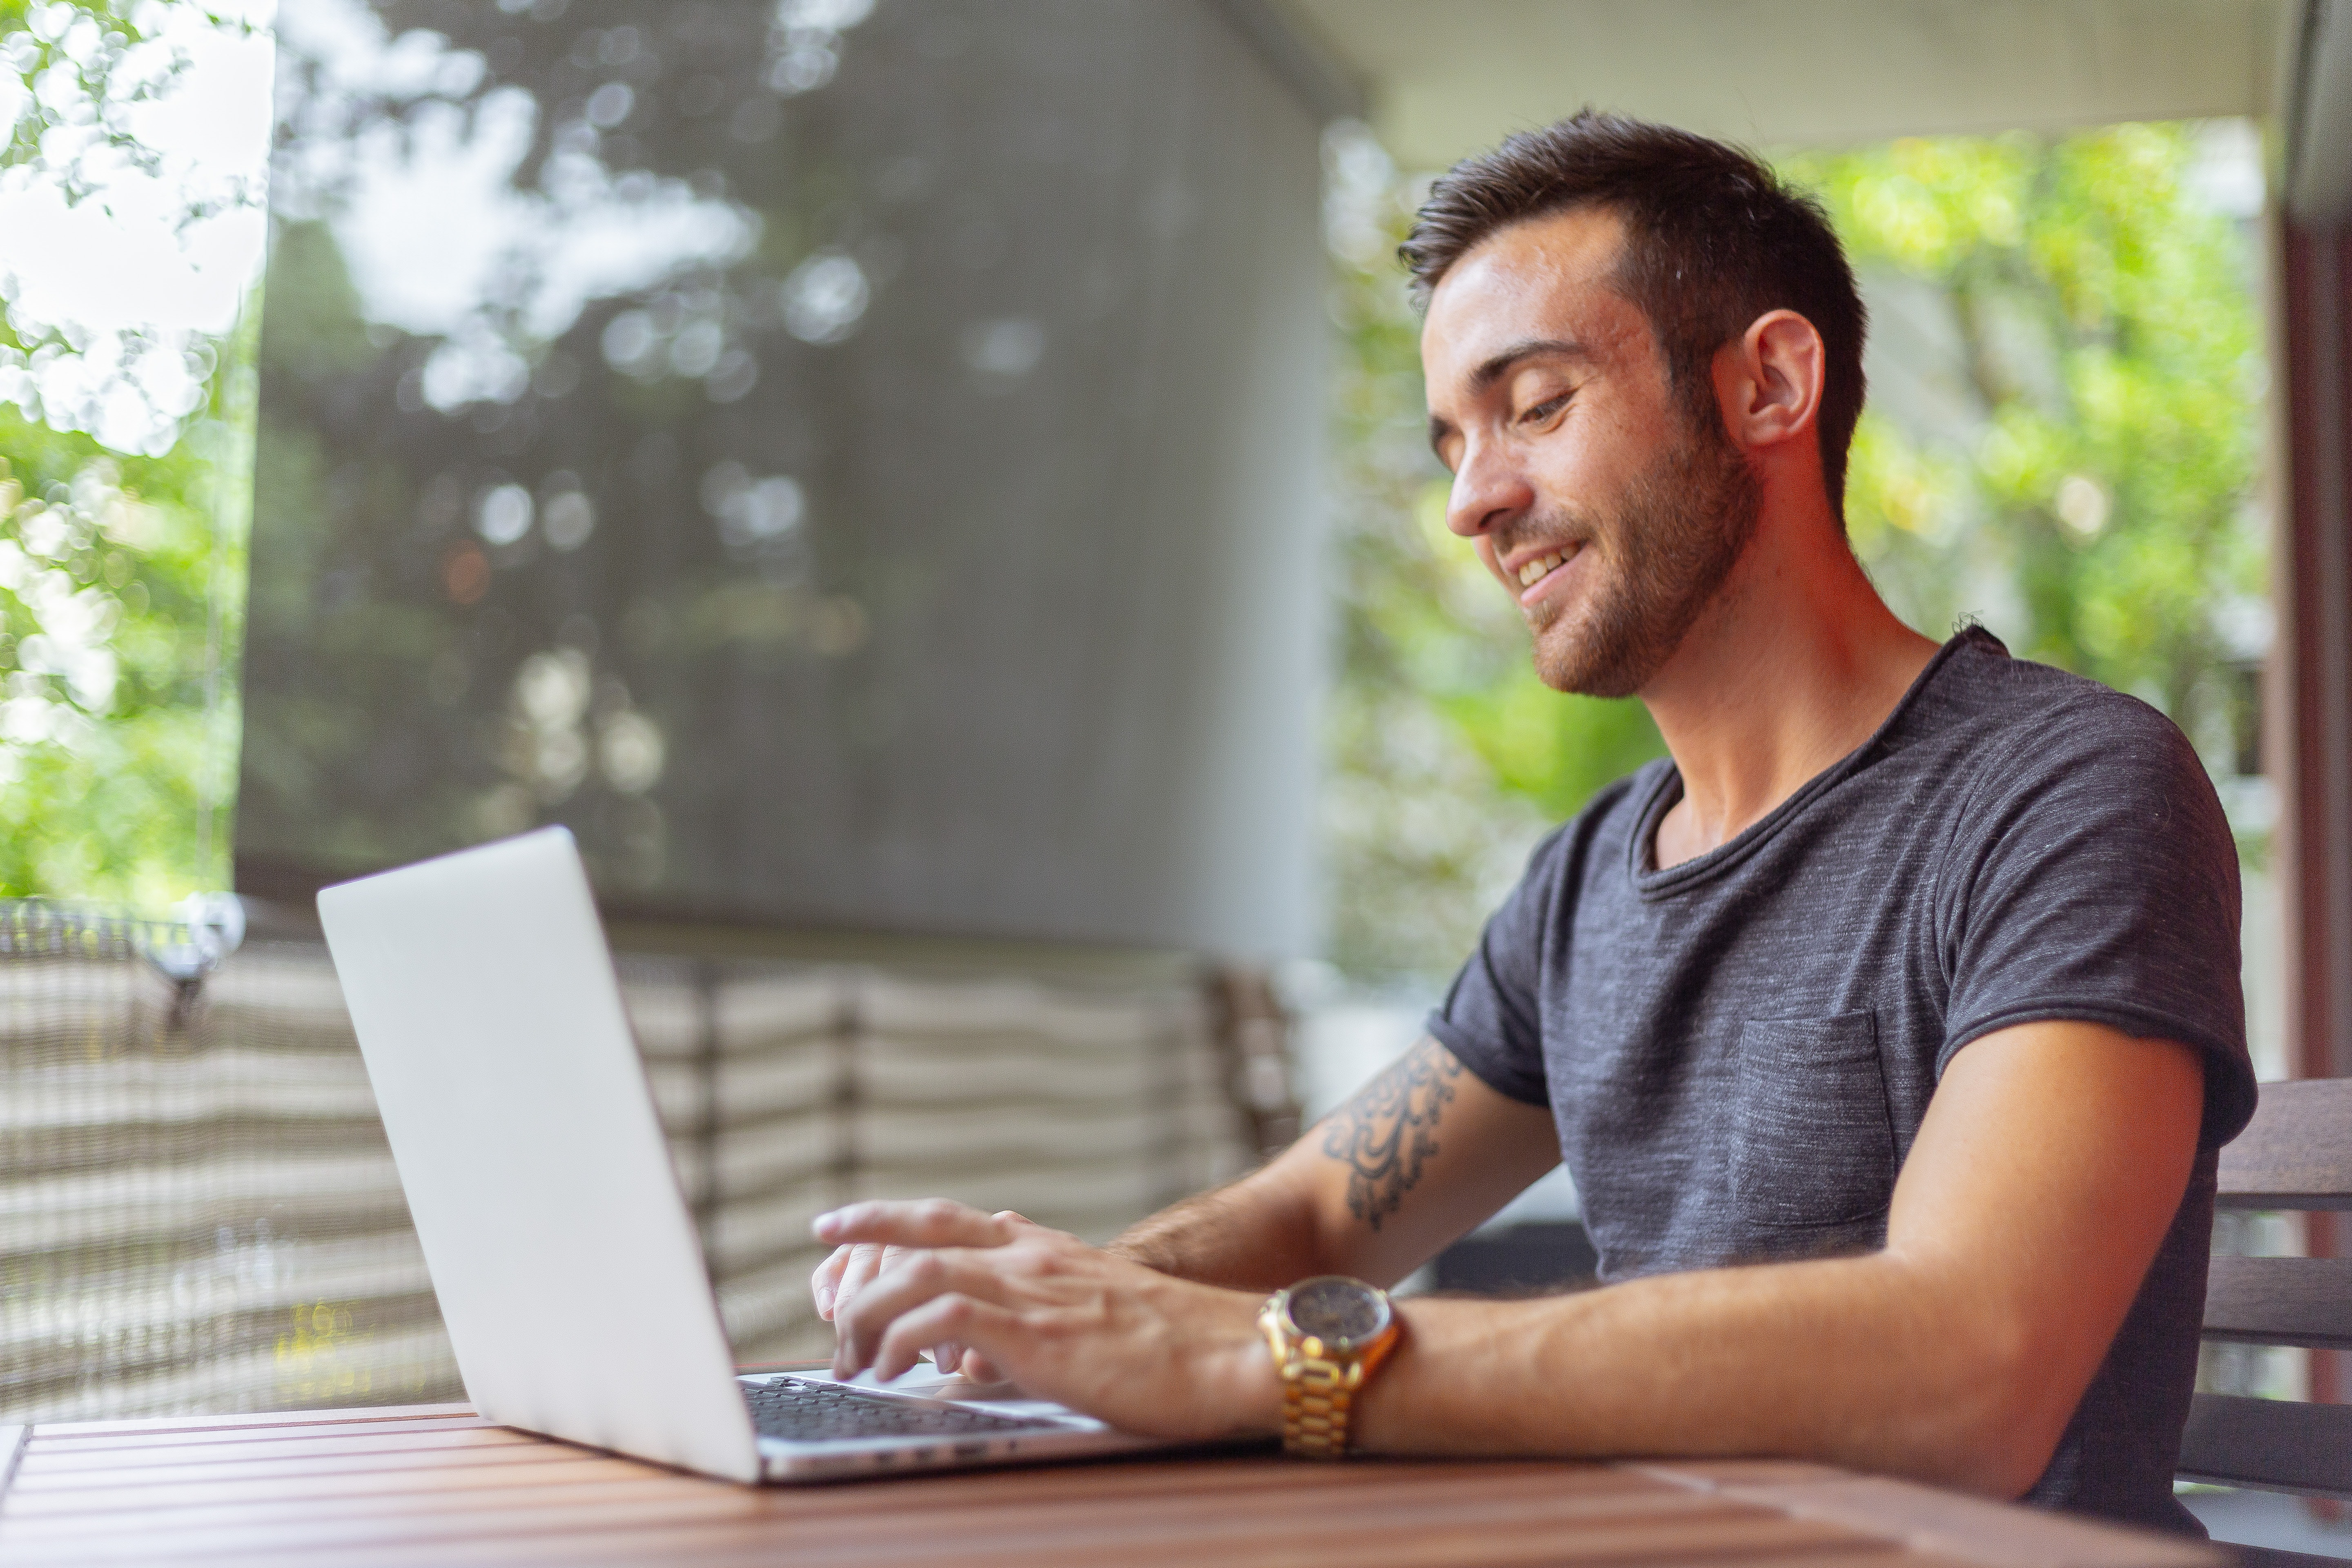 Image of an young white man with a beard tattoo, sitting in an open area typing on his laptop and smiling.